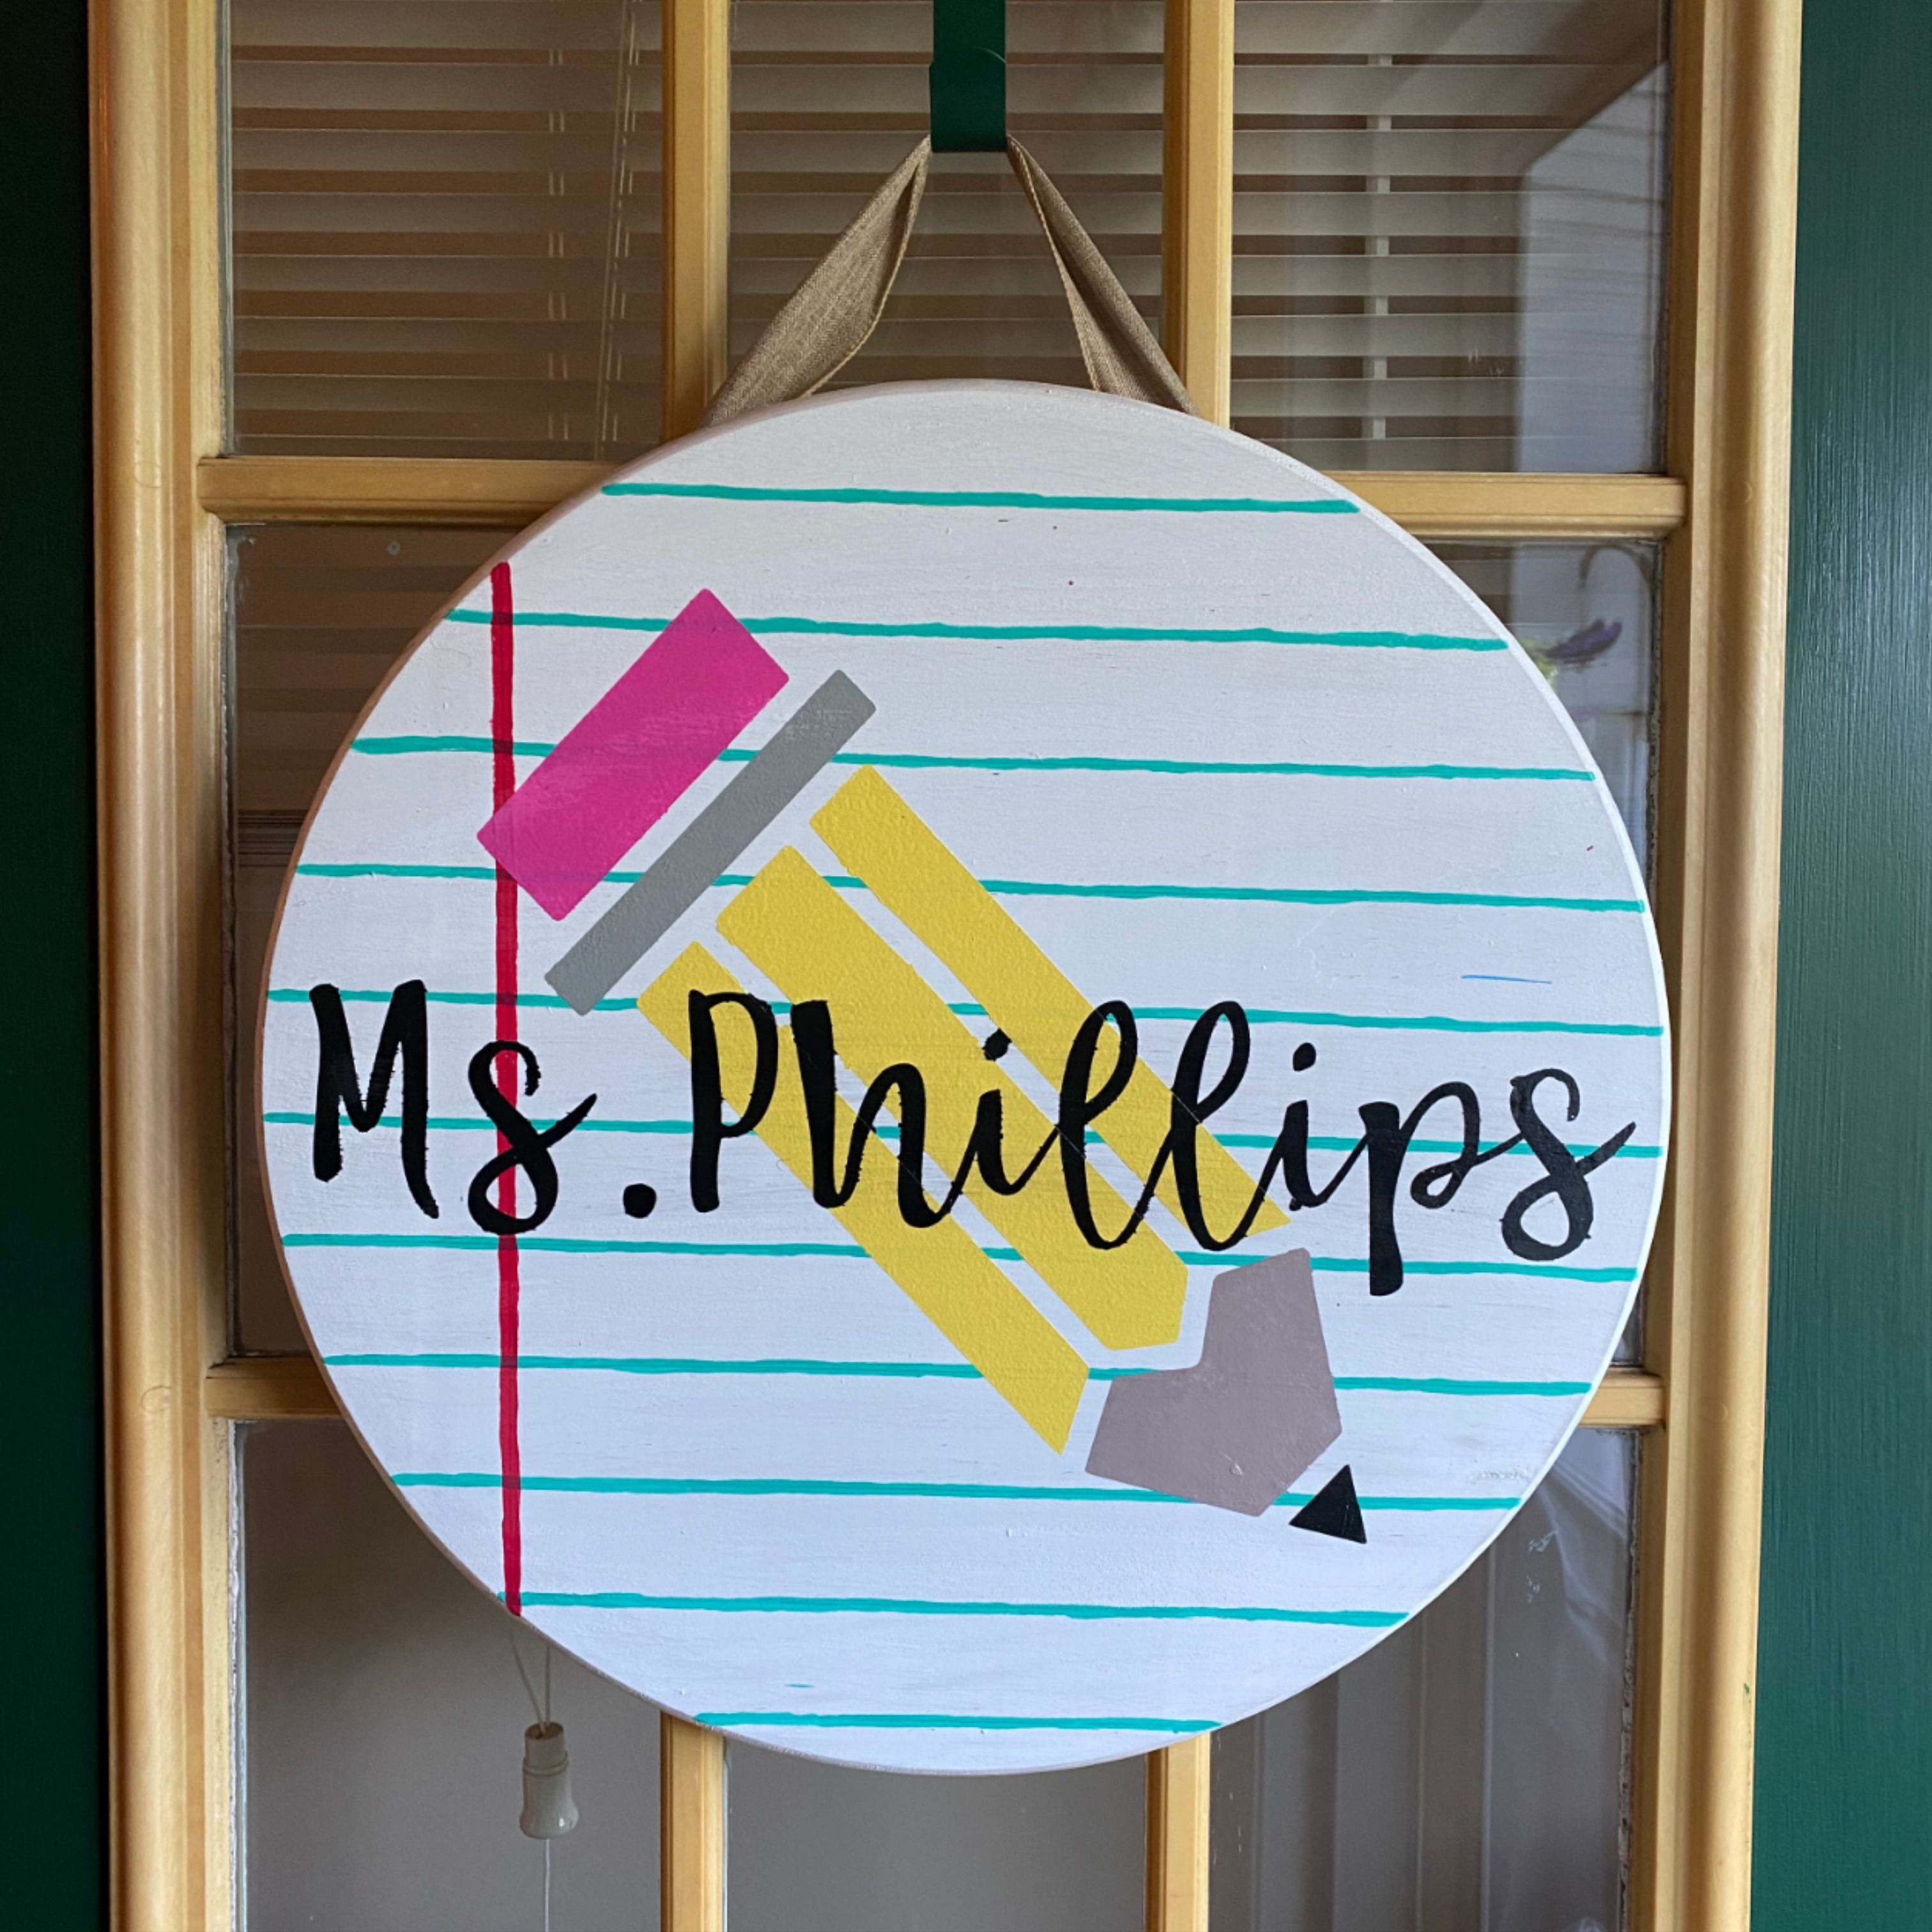 Teacher Name Sign For Sale In 2021 Teacher Name Signs Teacher Door Hangers Door Signs Diy Teacher name signs for classroom